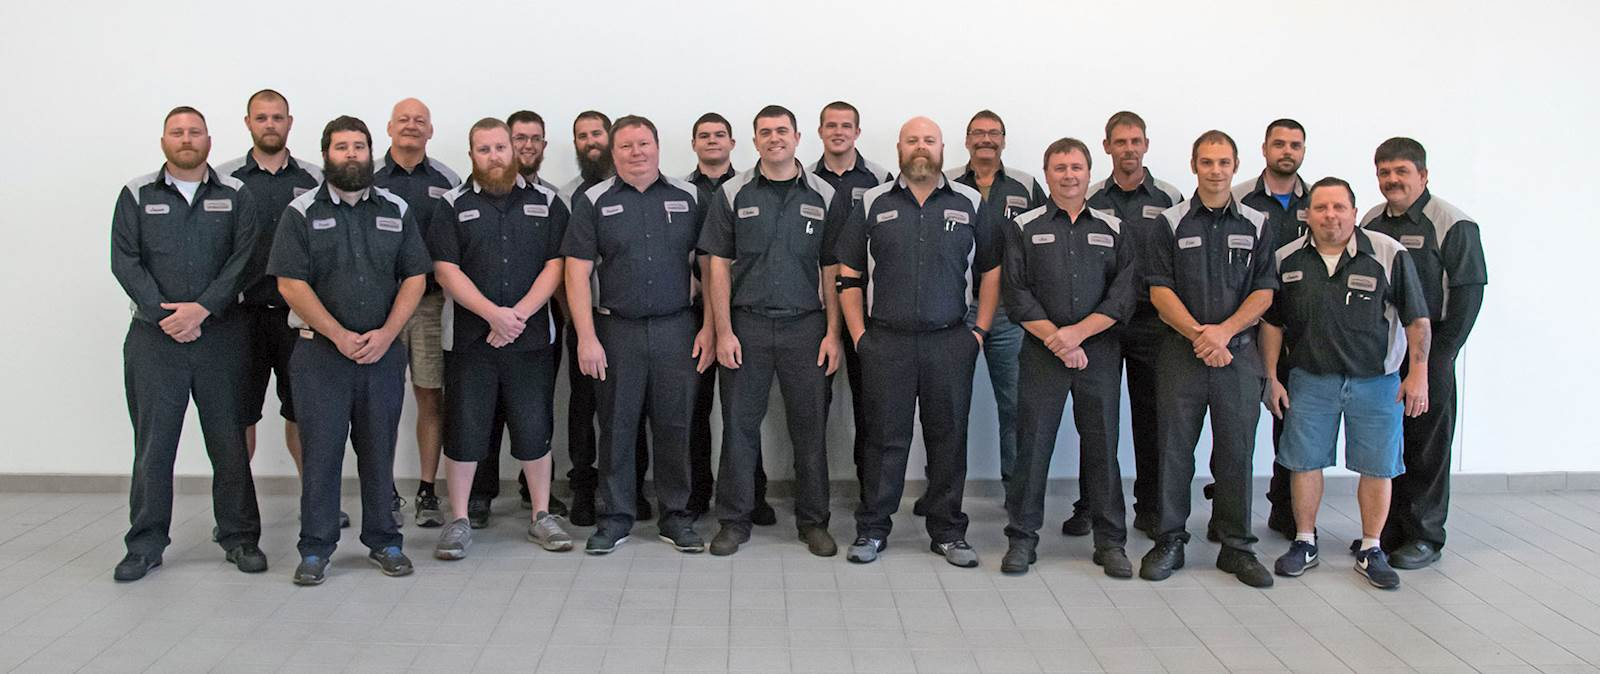 Isringhausen Service Advisors and Certified Technicians - photo